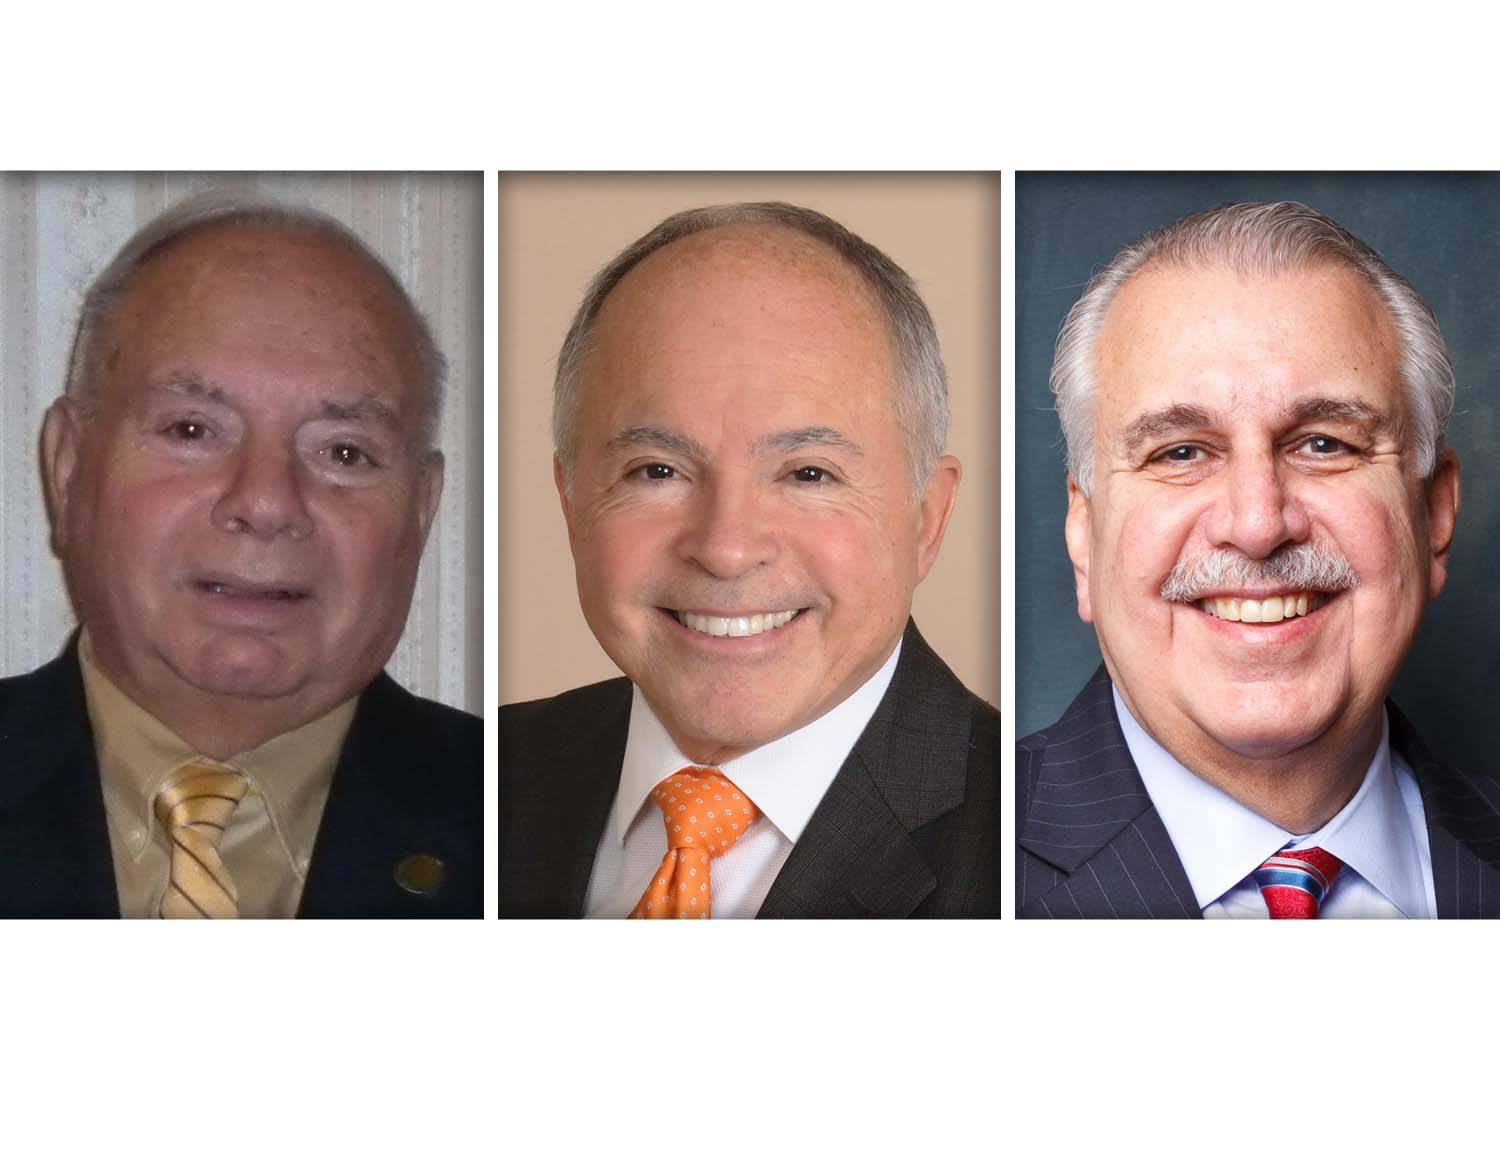 DuPage County Board member Sam Tornatore, right, is the only incumbent in the Republican primary race for two District 1 seats. The two other candidates seeking the GOP nomination are Paul DeMichele, left, and Dino Gavanes.